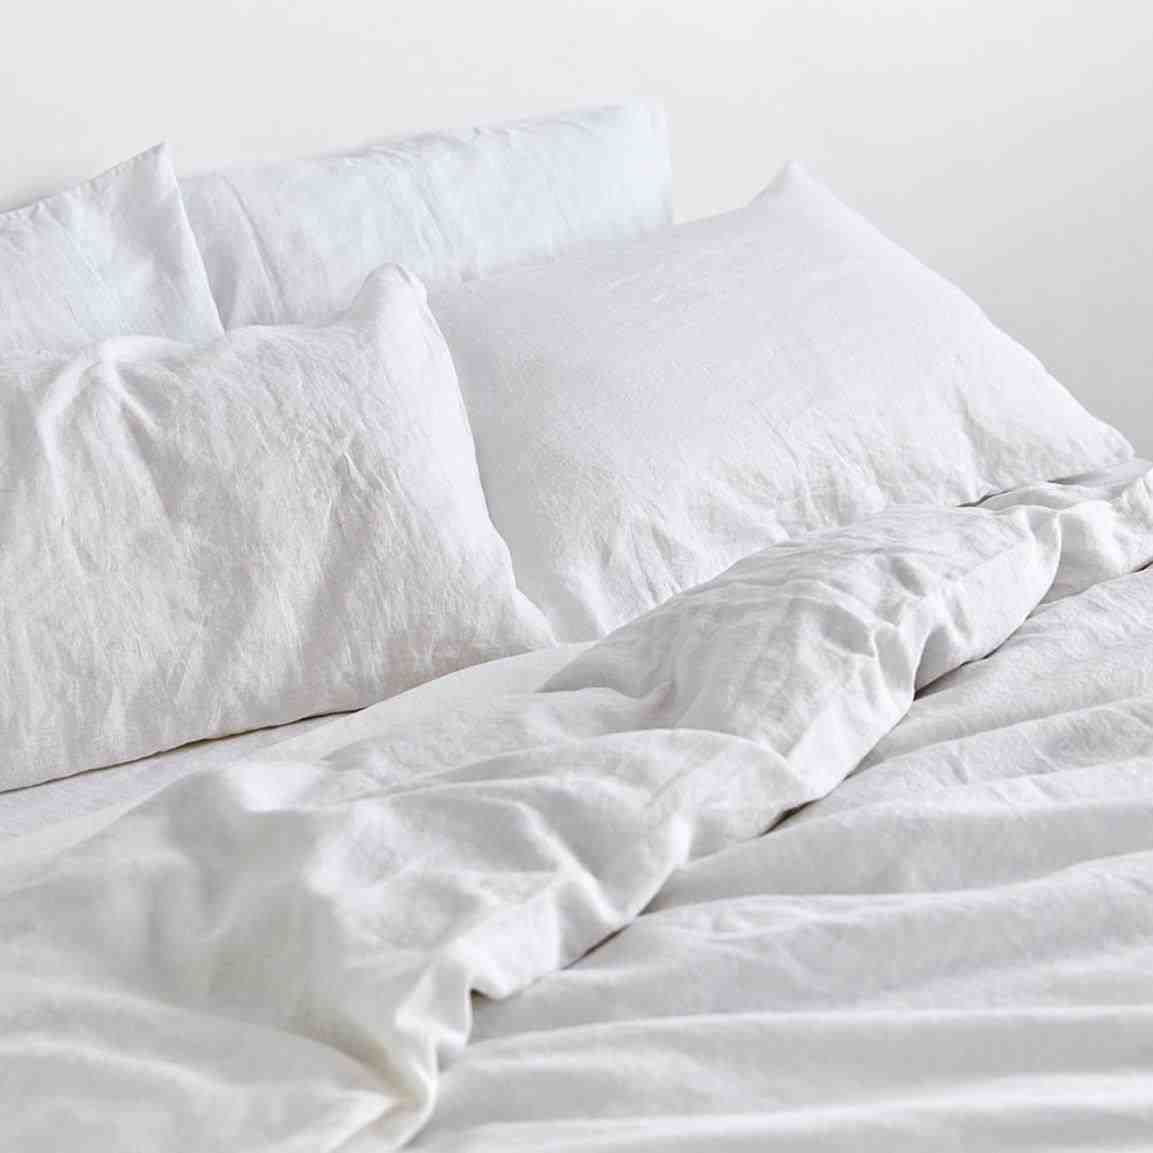 White bed sheets twitter header Cream Colored This White Bed Sheets Twitter Header Images Tatum Bed Largegray Photo Mar 15 45 18 Pm Images Stonewashed Sheet Set With Linen Cuff Pinterest This White Bed Sheets Twitter Header Images Tatum Bed